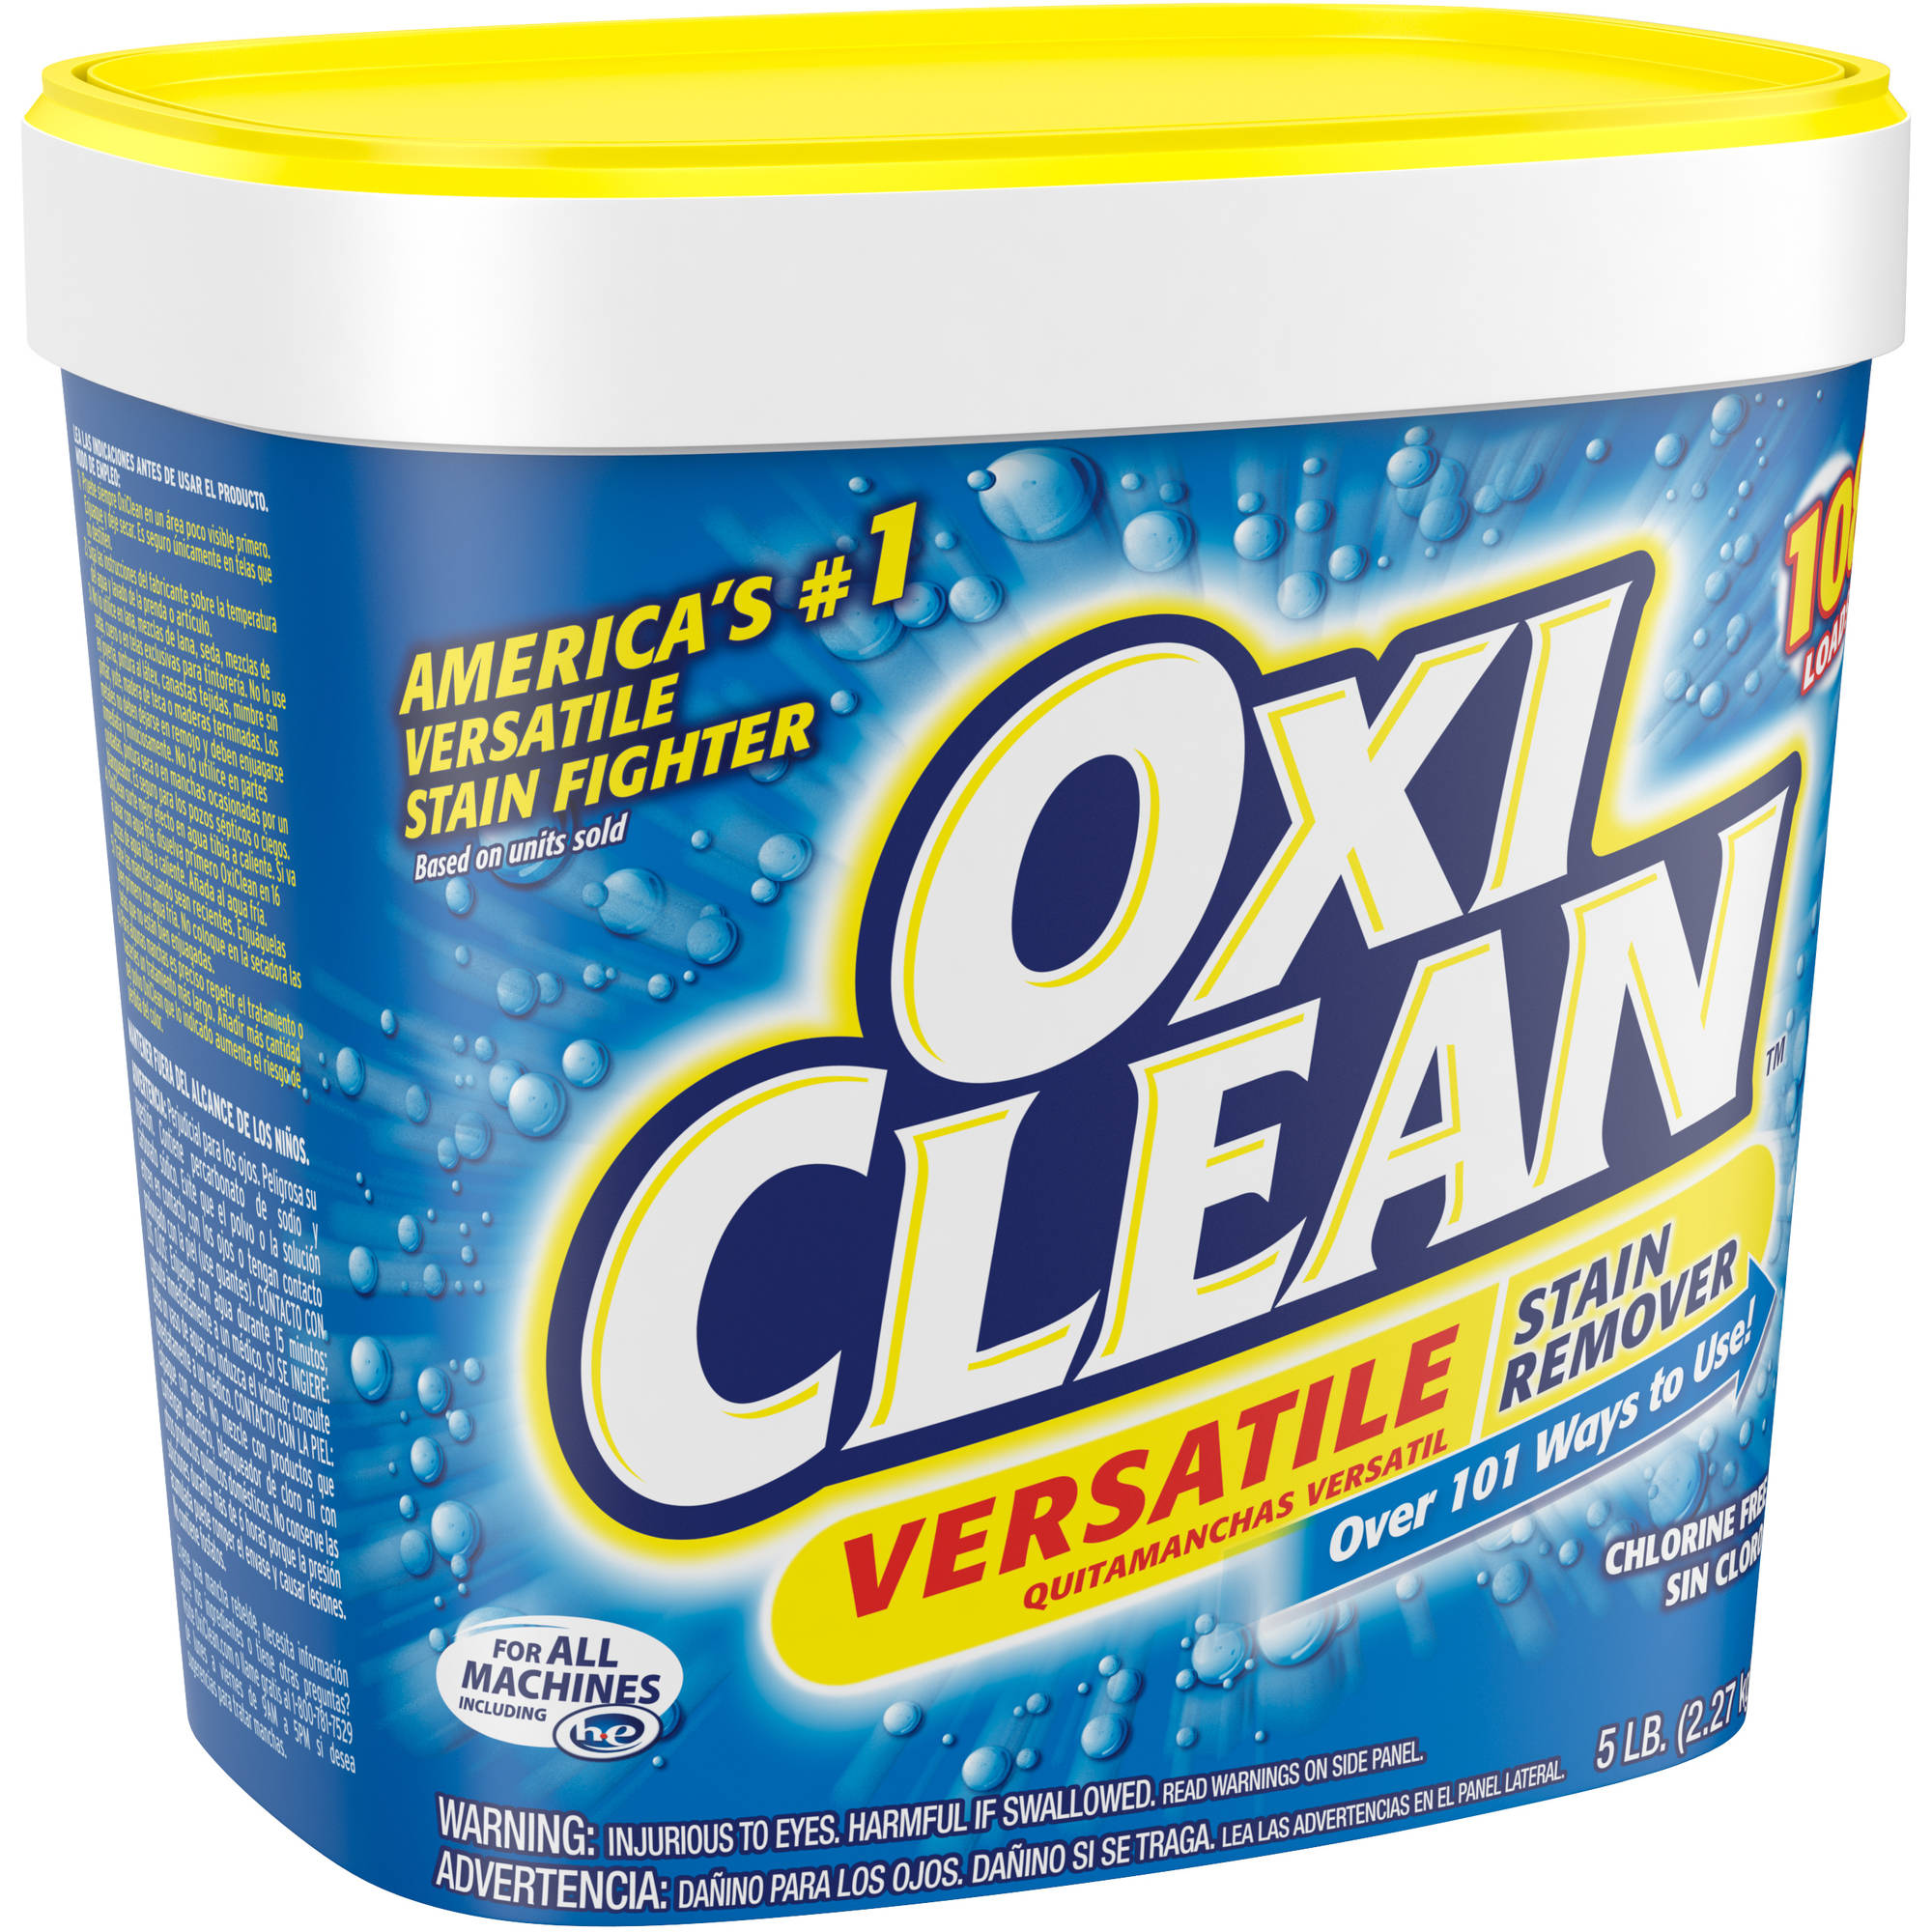 OxiClean Versatile Stain Remover, 5 lbs